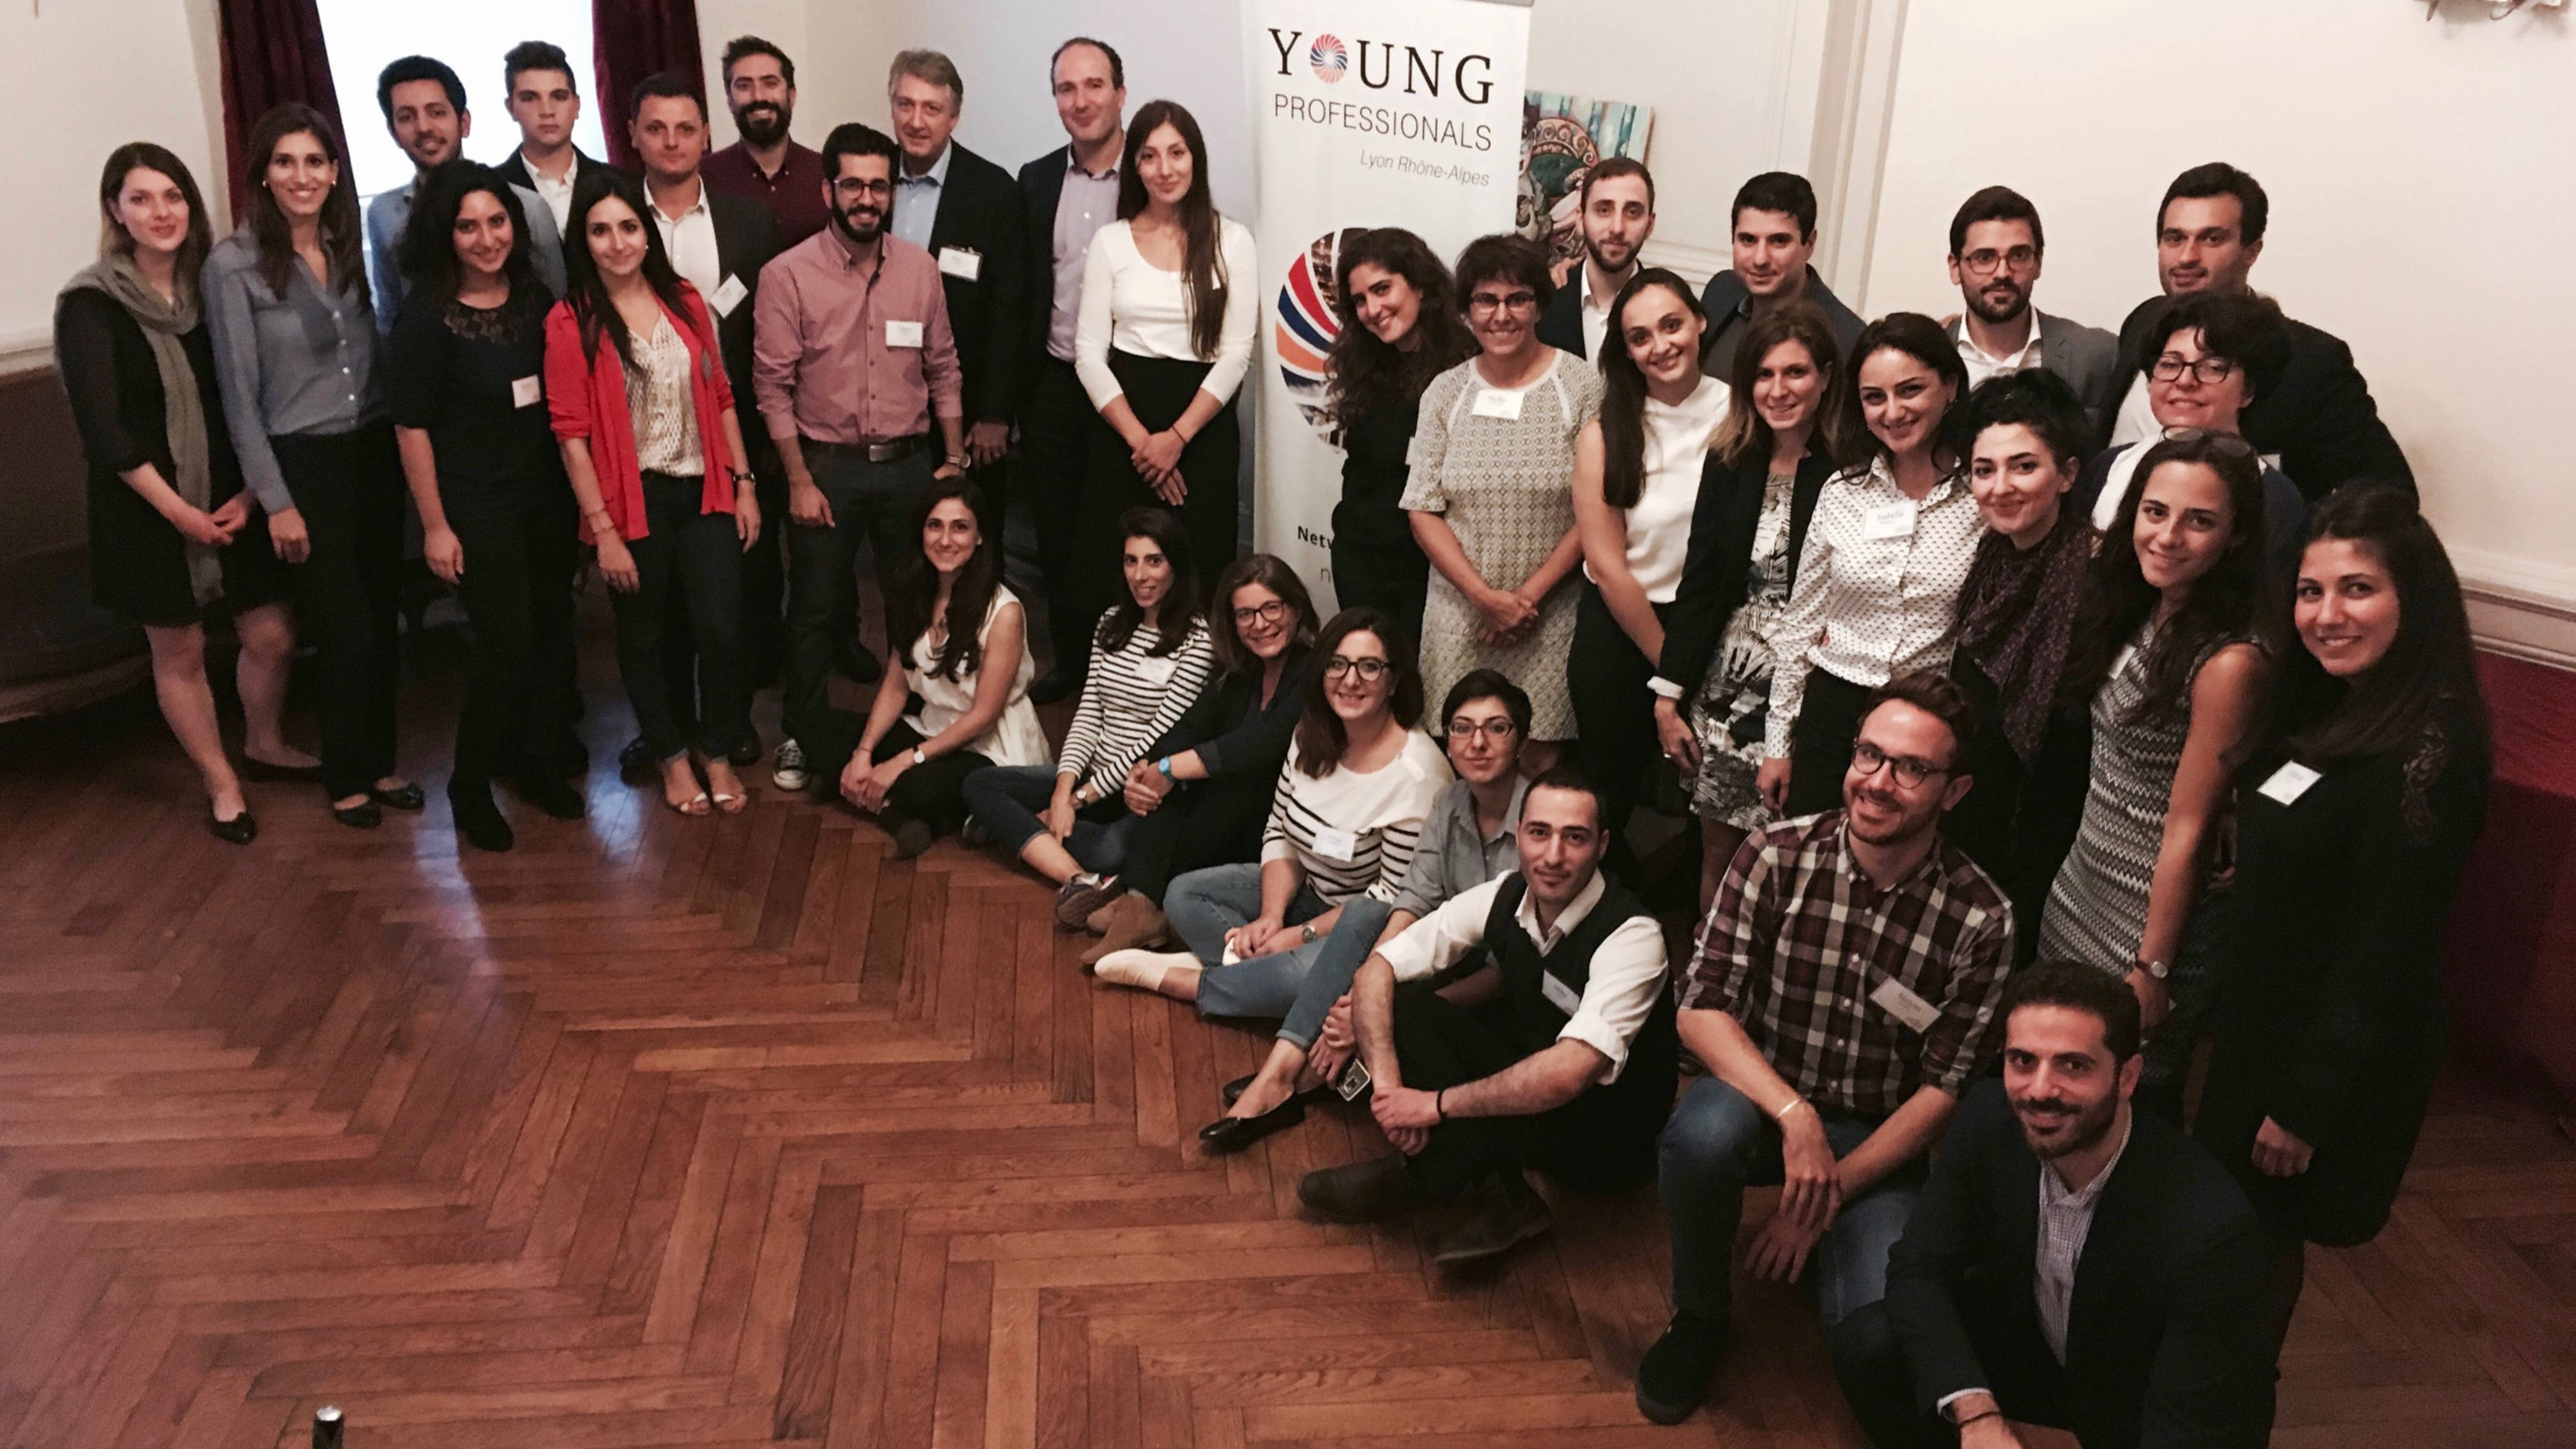 European Young Professionals Summit – Lyon, France – Setp. 30 to Oct. 1, 2016